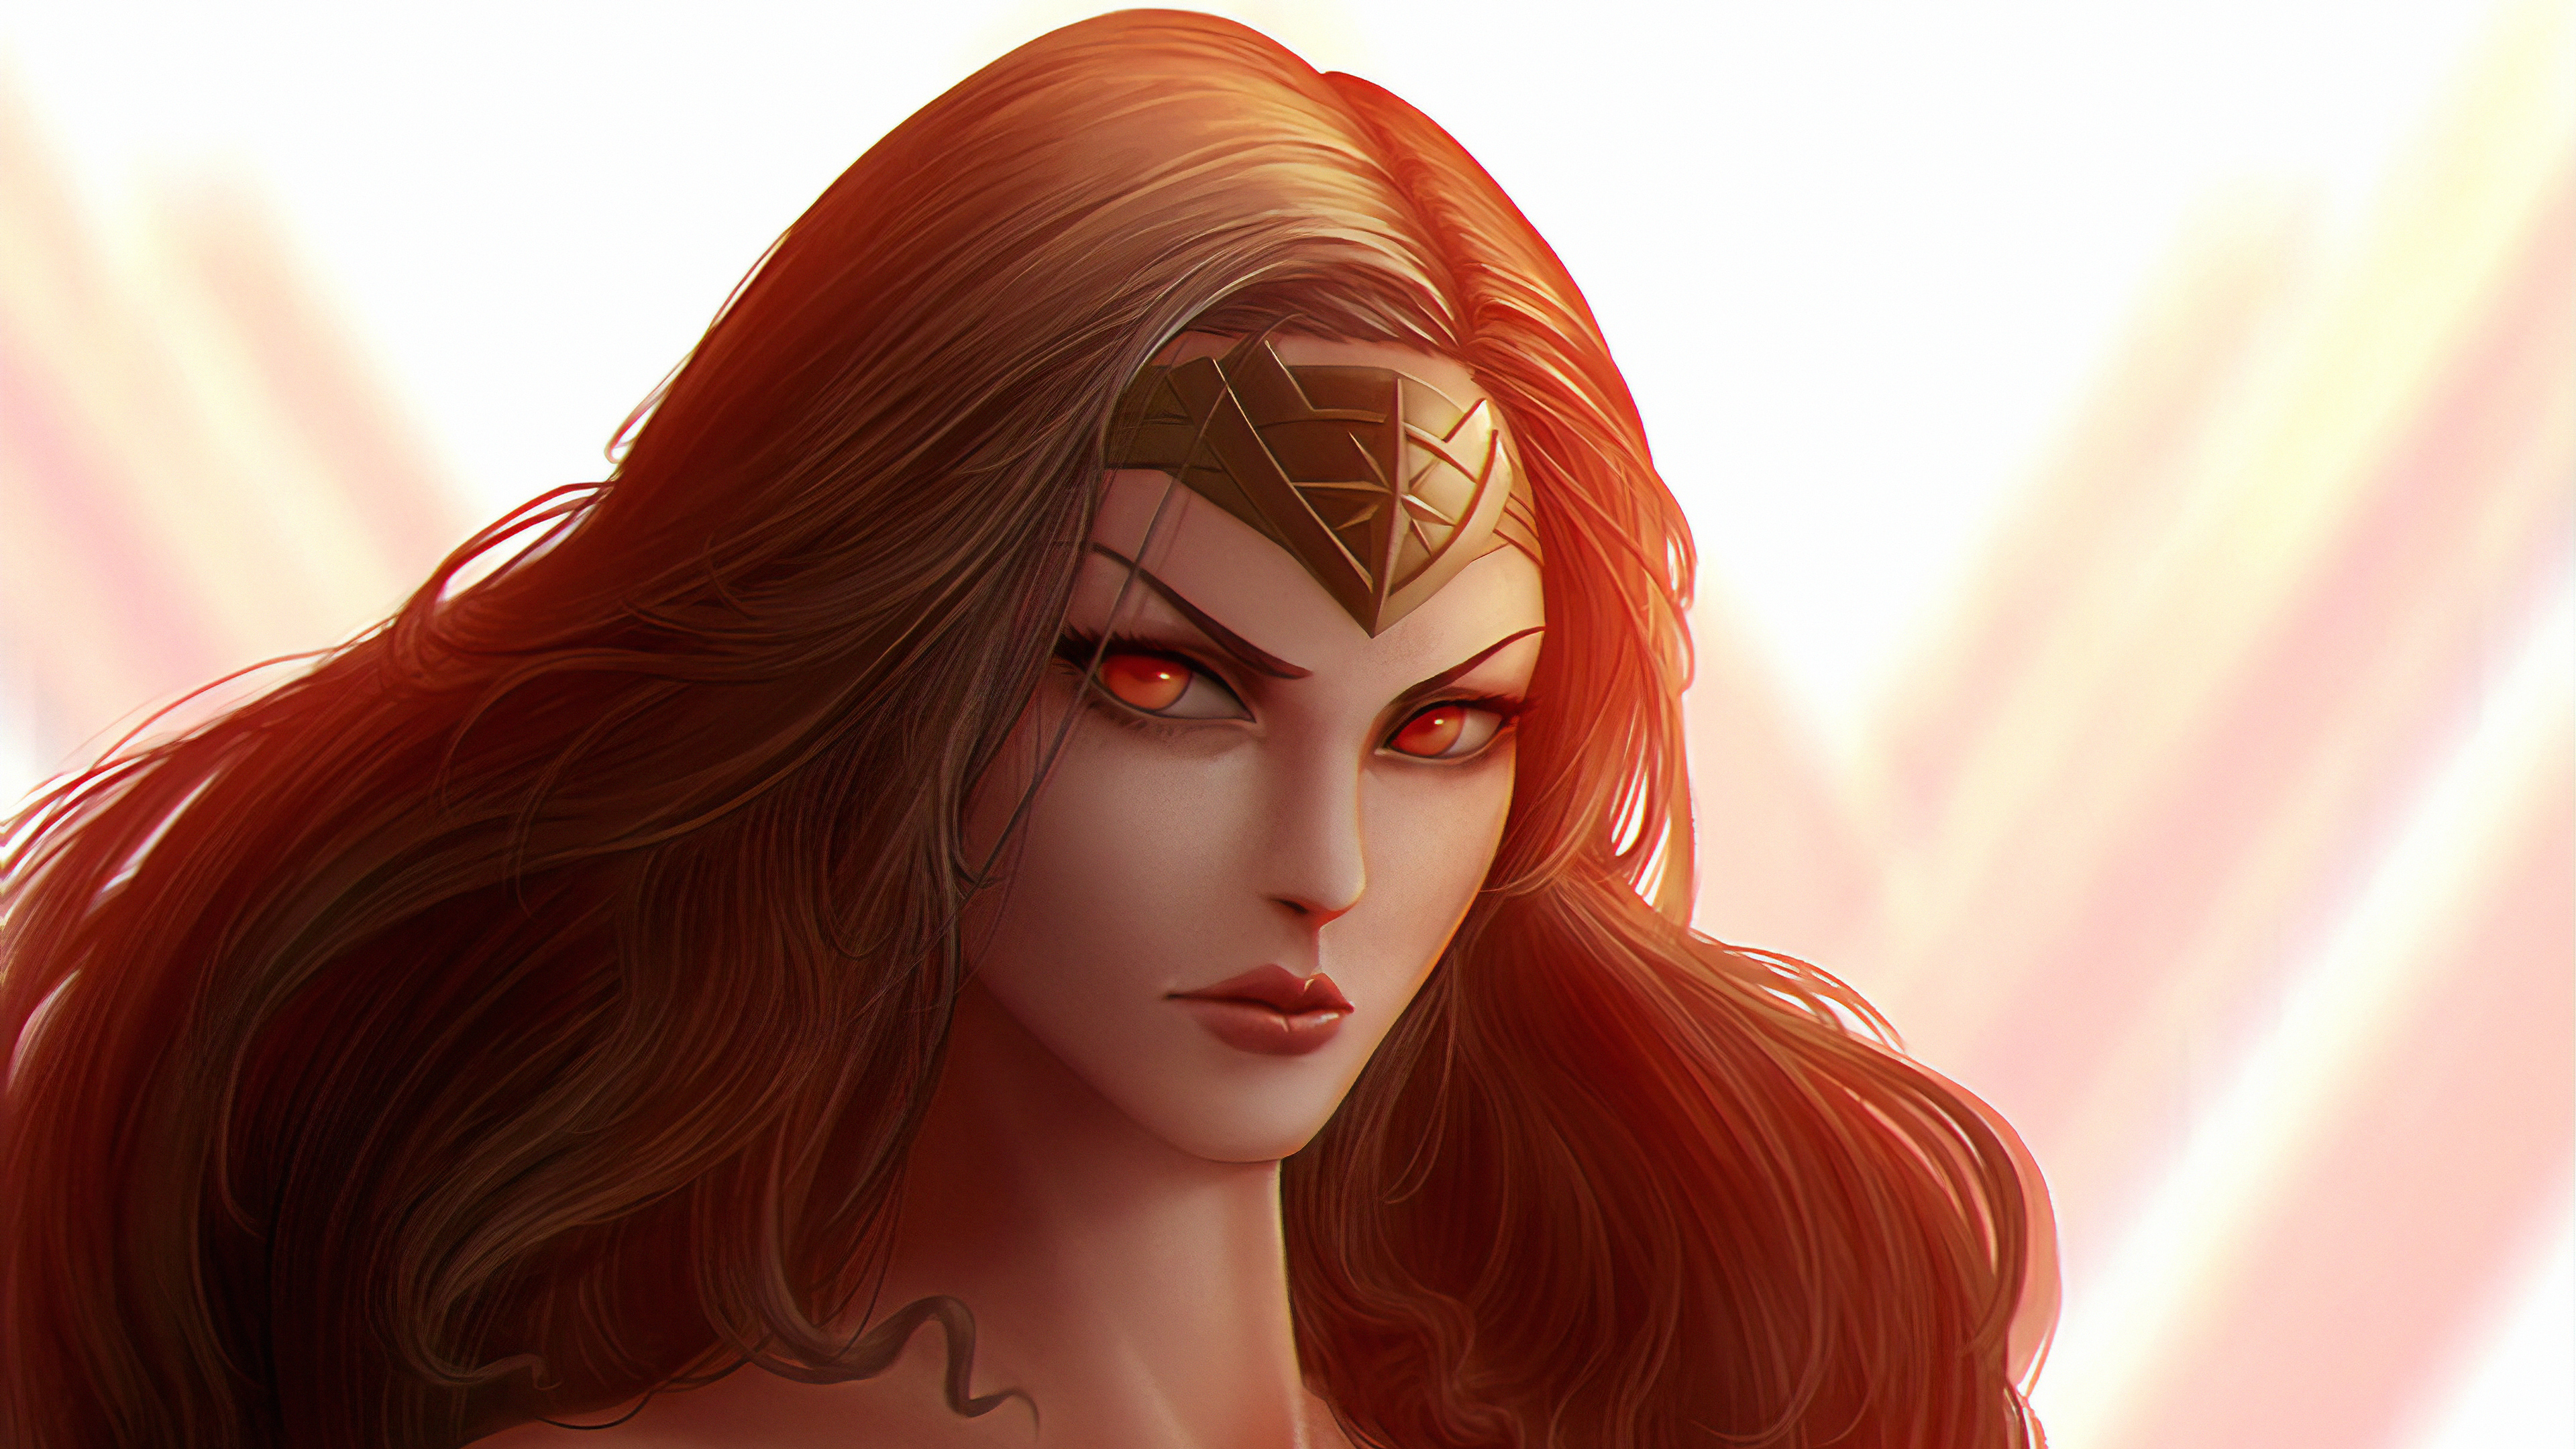 wonder woman anger 1570918449 - Wonder Woman Anger - wonder woman wallpapers, superheroes wallpapers, hd-wallpapers, digital art wallpapers, artwork wallpapers, artstation wallpapers, 4k-wallpapers